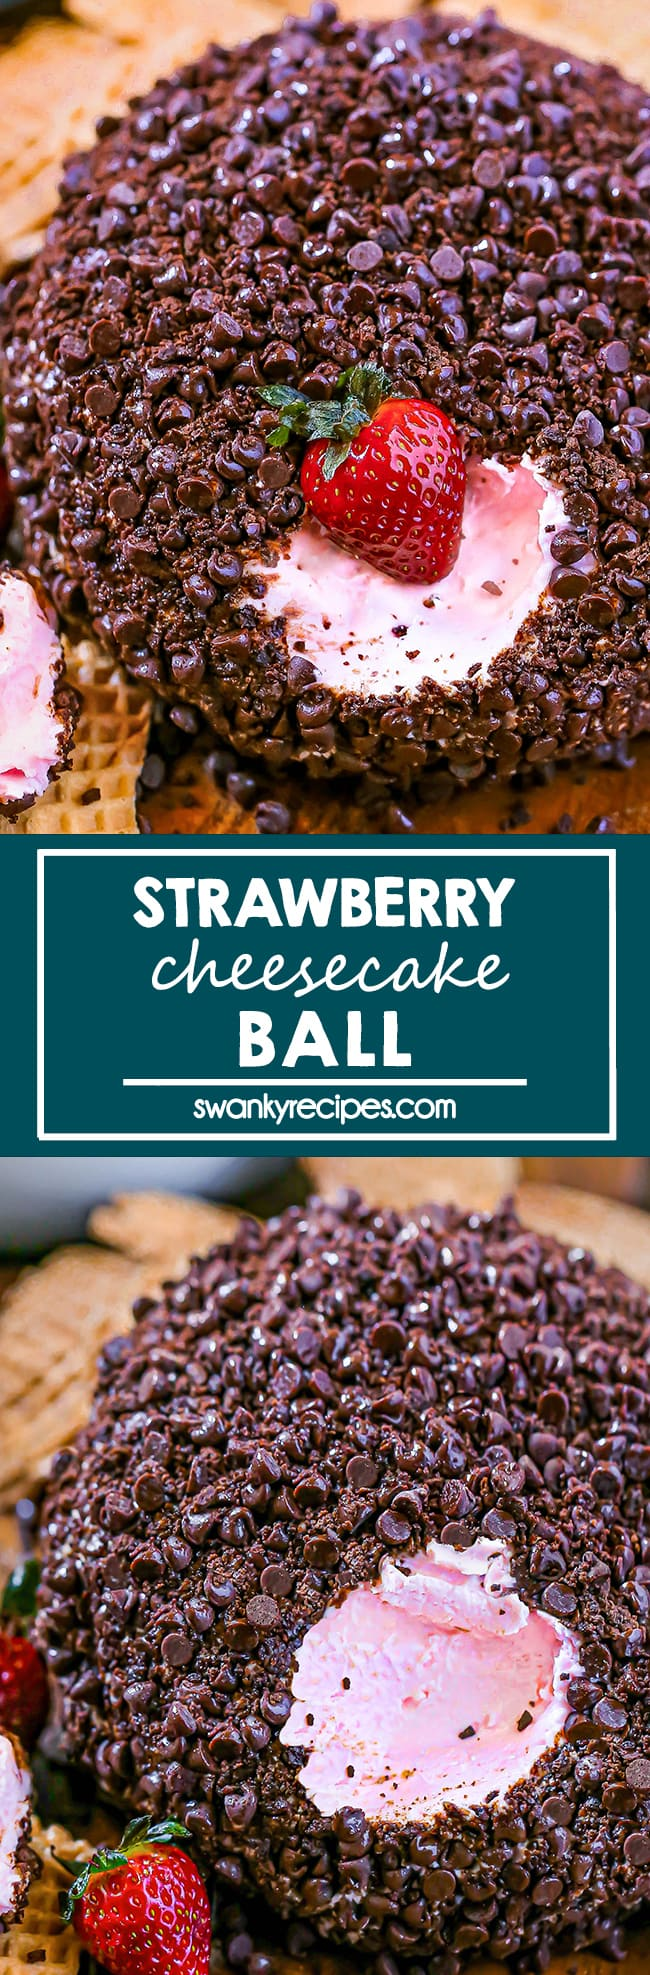 Strawberry Cheesecake Ball - Strawberry cheesecake ball rolled in mini chocolate chips and crushed oreo cookies. The center is dipped into with a fresh strawberry exposing the smooth cheese center. Text in center reads strawberry cheesecake ball. Second image is the dessert ball with the pink cheese center exposed and a strawberry on a wooden board with waffle cone chips.